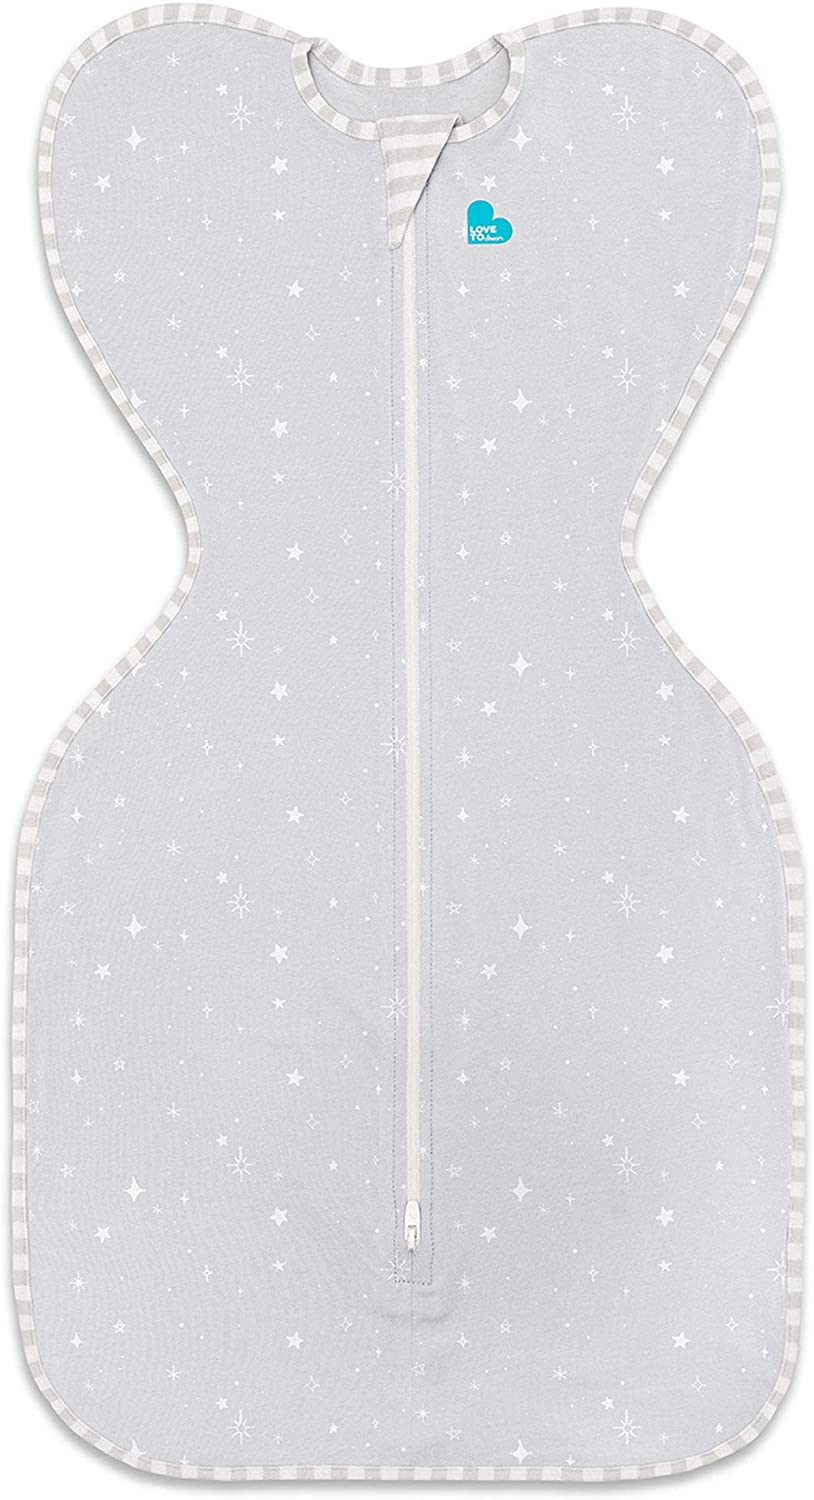 0.2 TOG Baby Swaddle Blanket Ideal for Summer /& Warmer Temperatures| Small 3.5kg-6kg Love To Dream Lite Swaddle UP